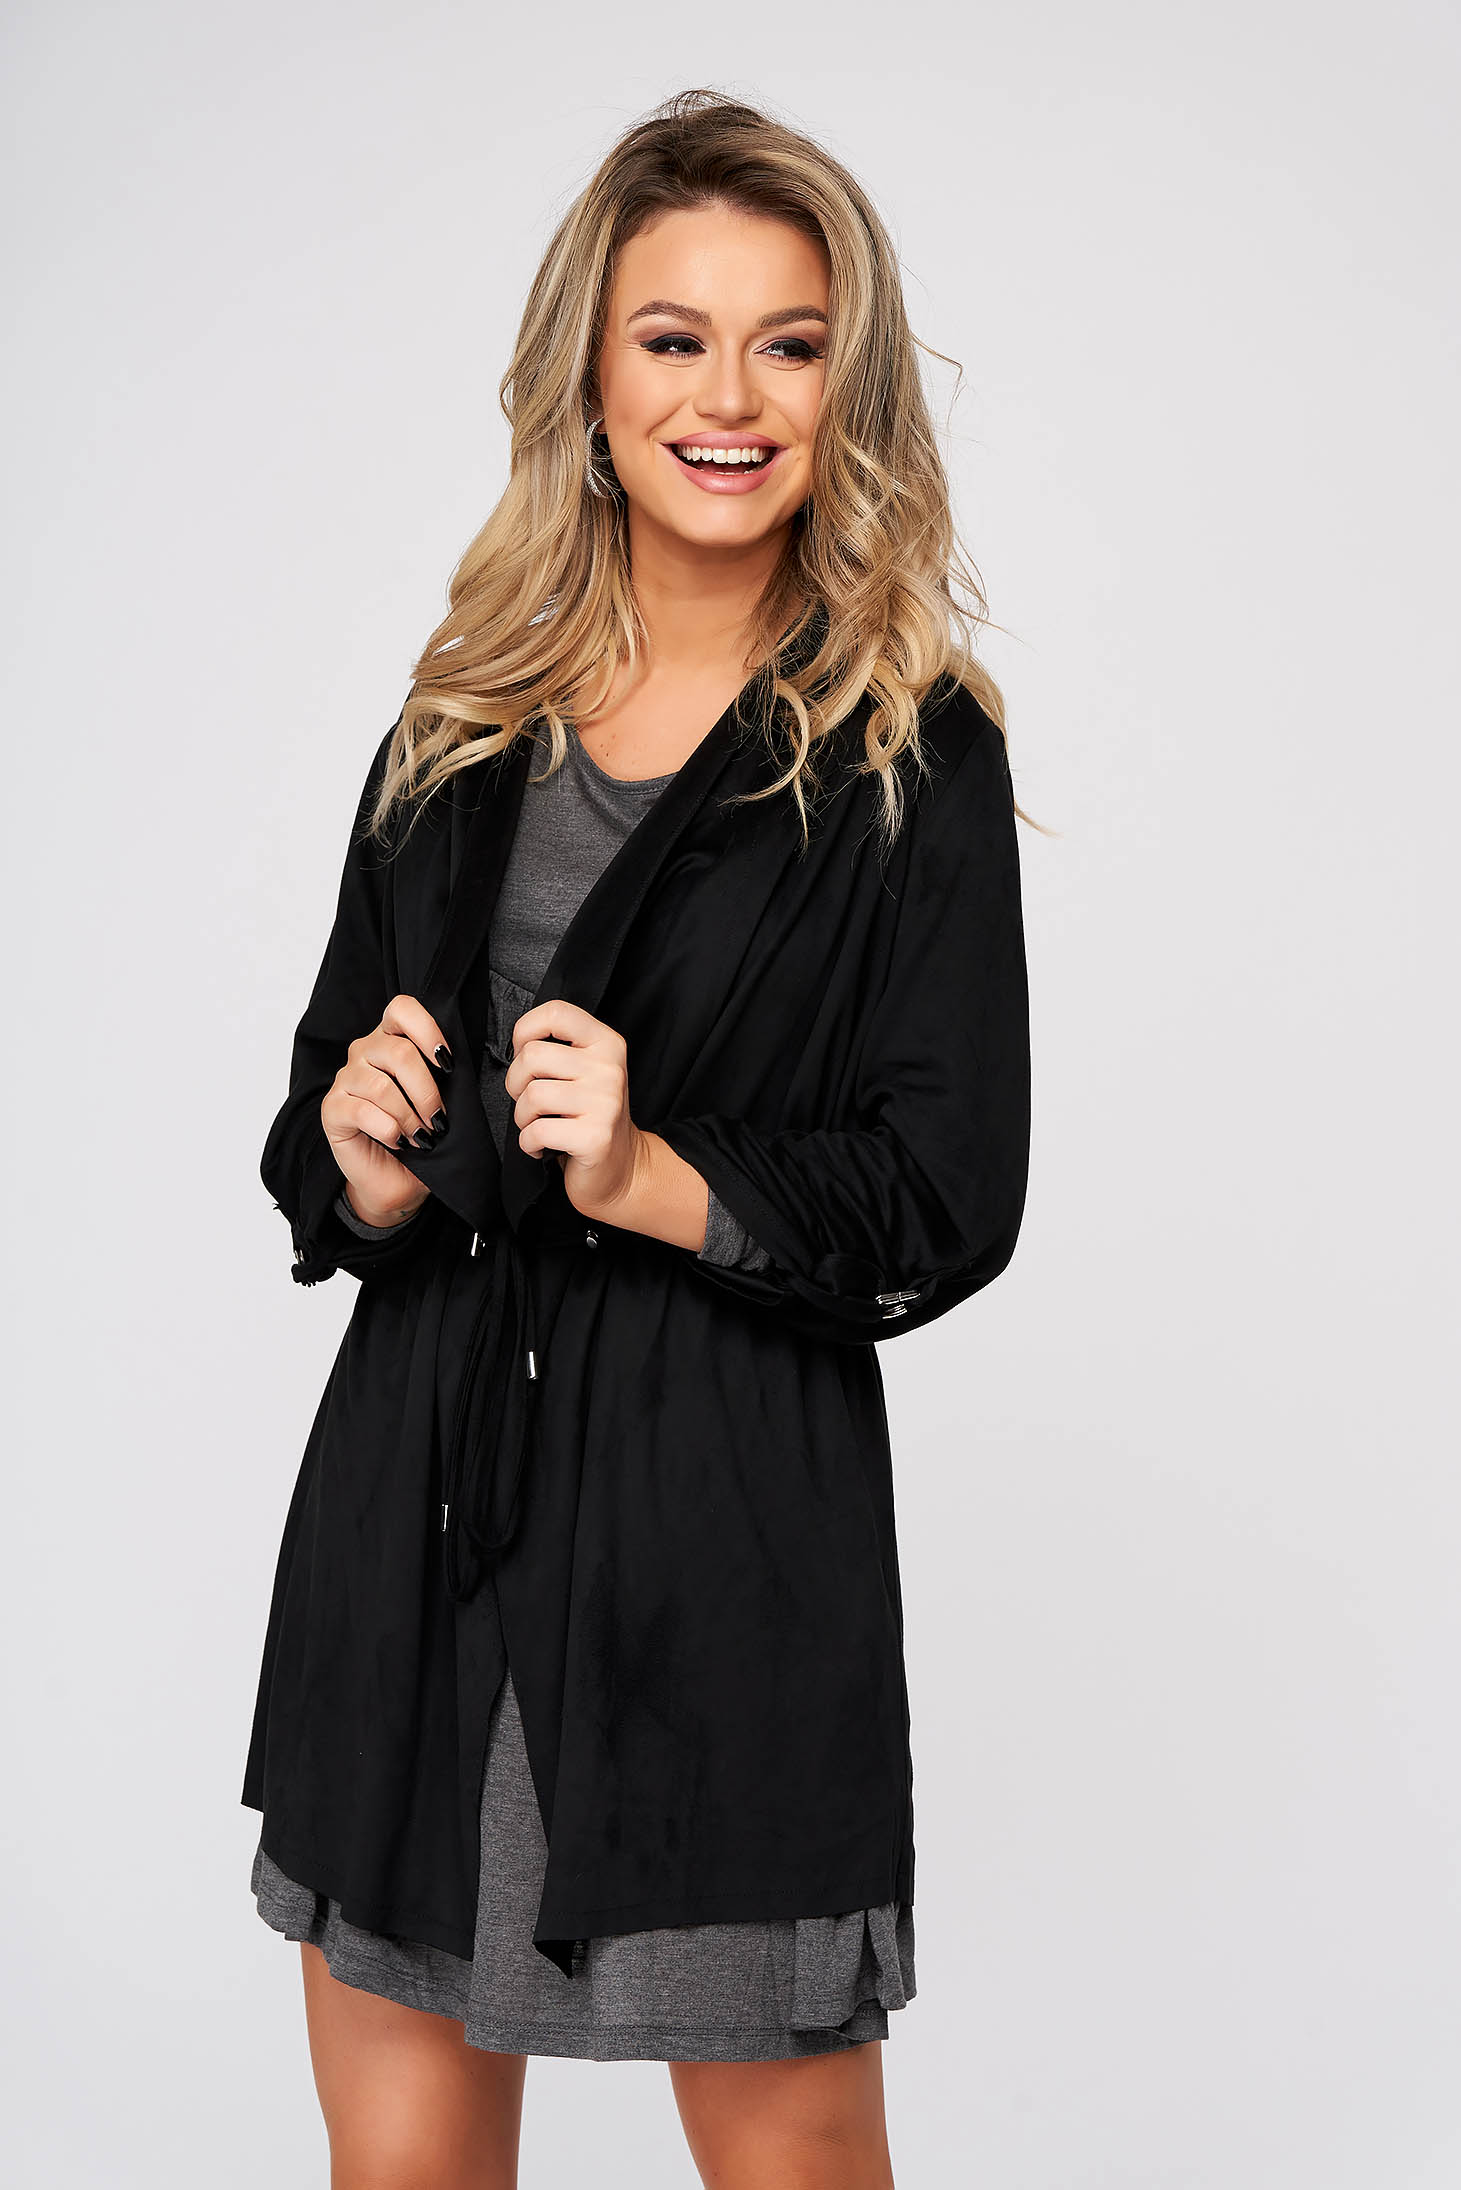 Black cardigan casual from velvet fabric is fastened around the waist with a ribbon